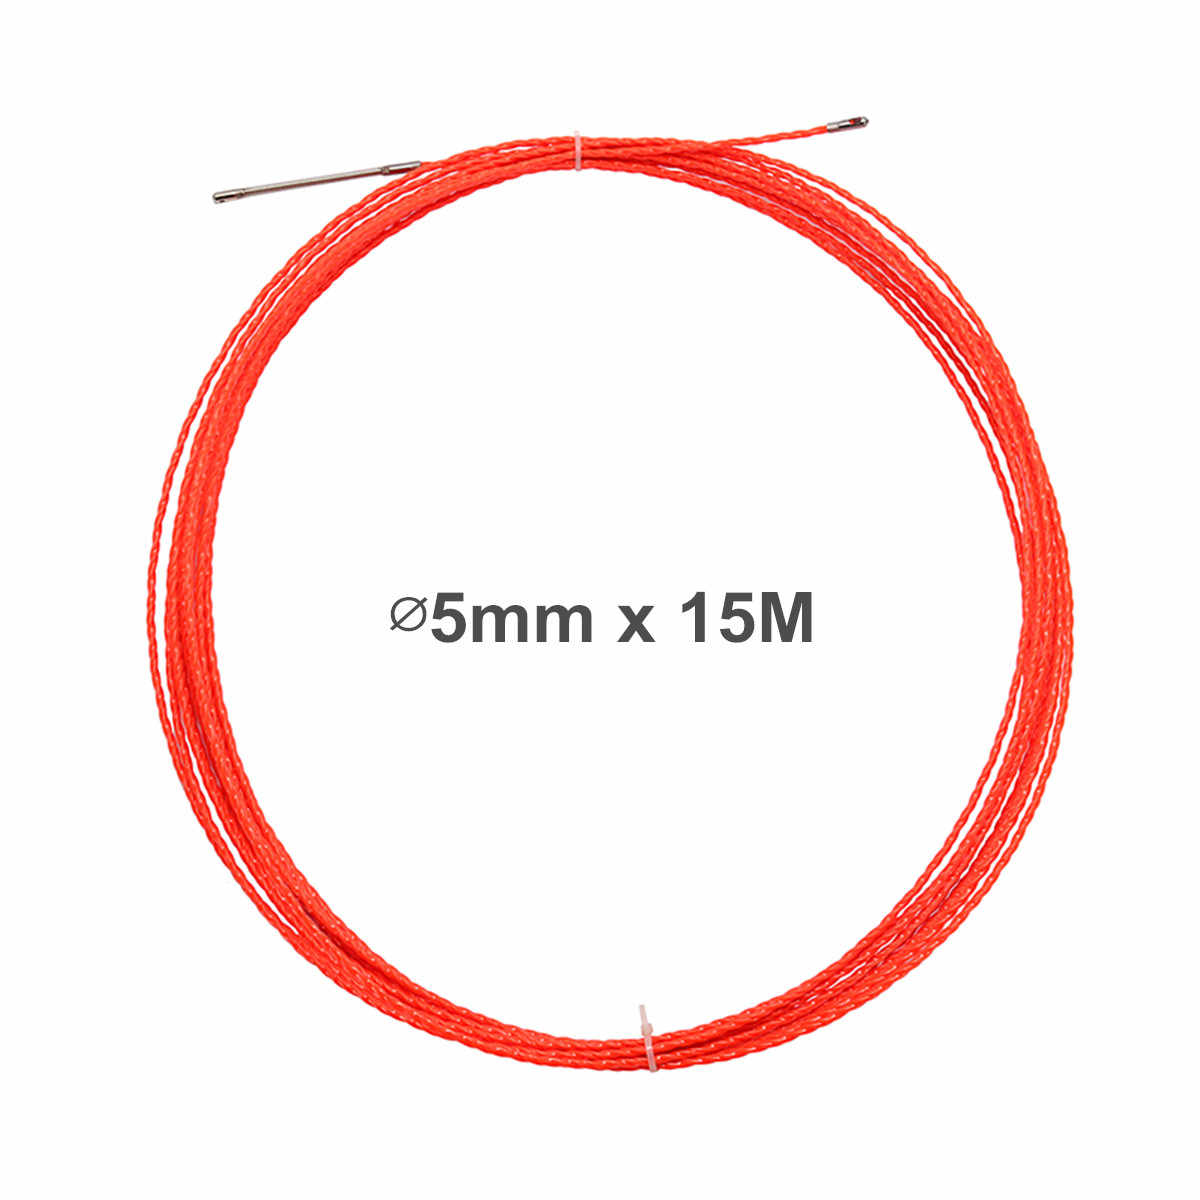 5mm 15M Professional Cable Push Puller Rodder Reel Conduit Snake Fish Tape Wire Cabling Tools Electrical Wiring Accessories Kit